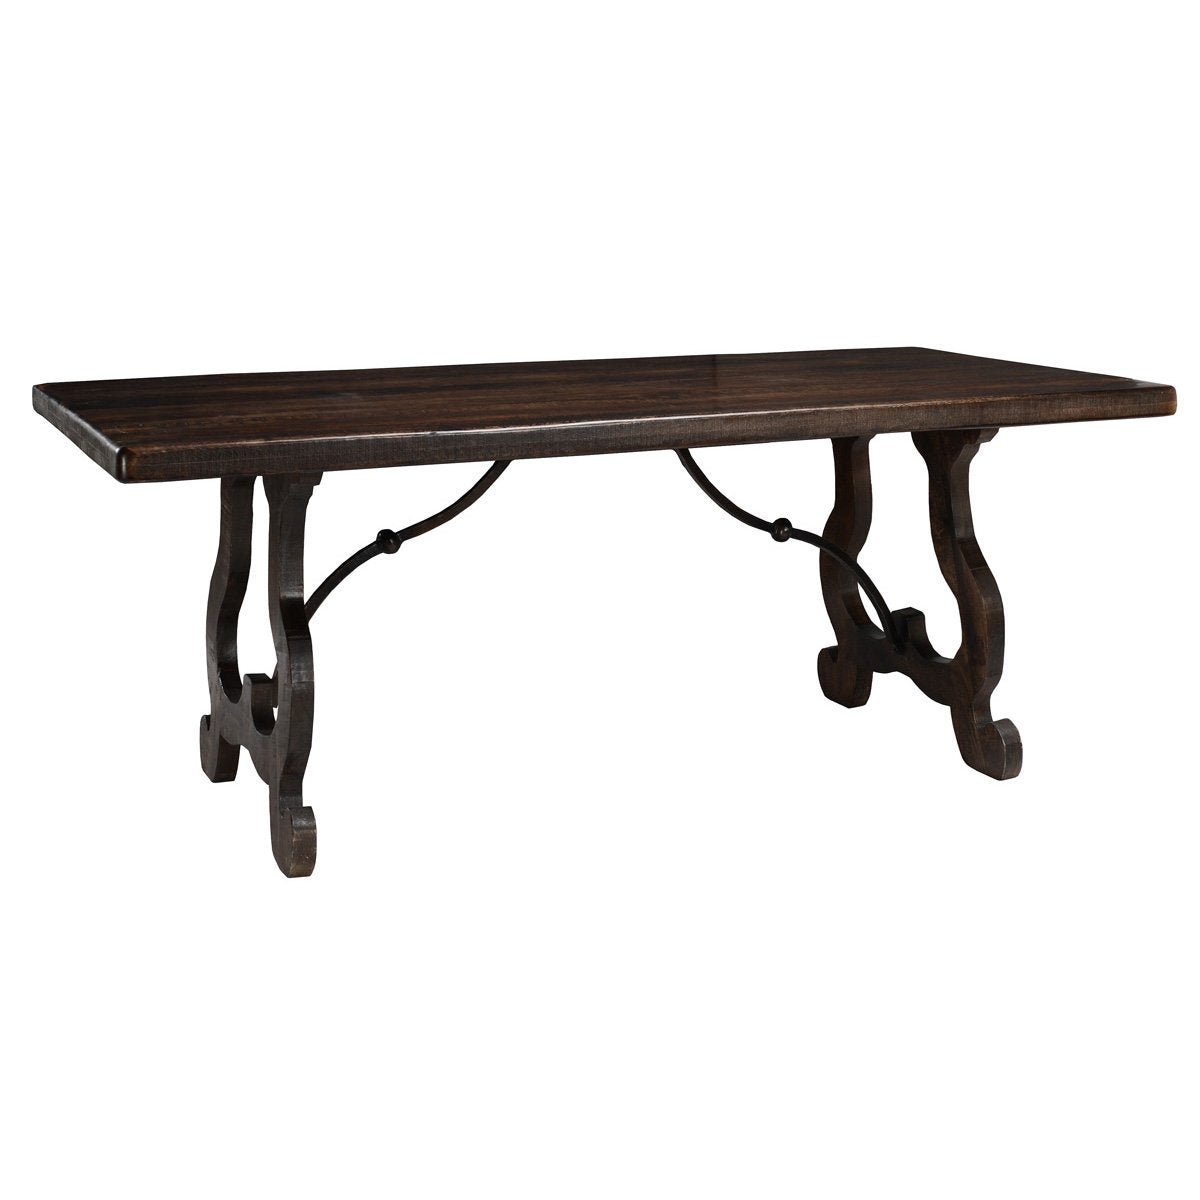 Beatrice Dining Table 78""